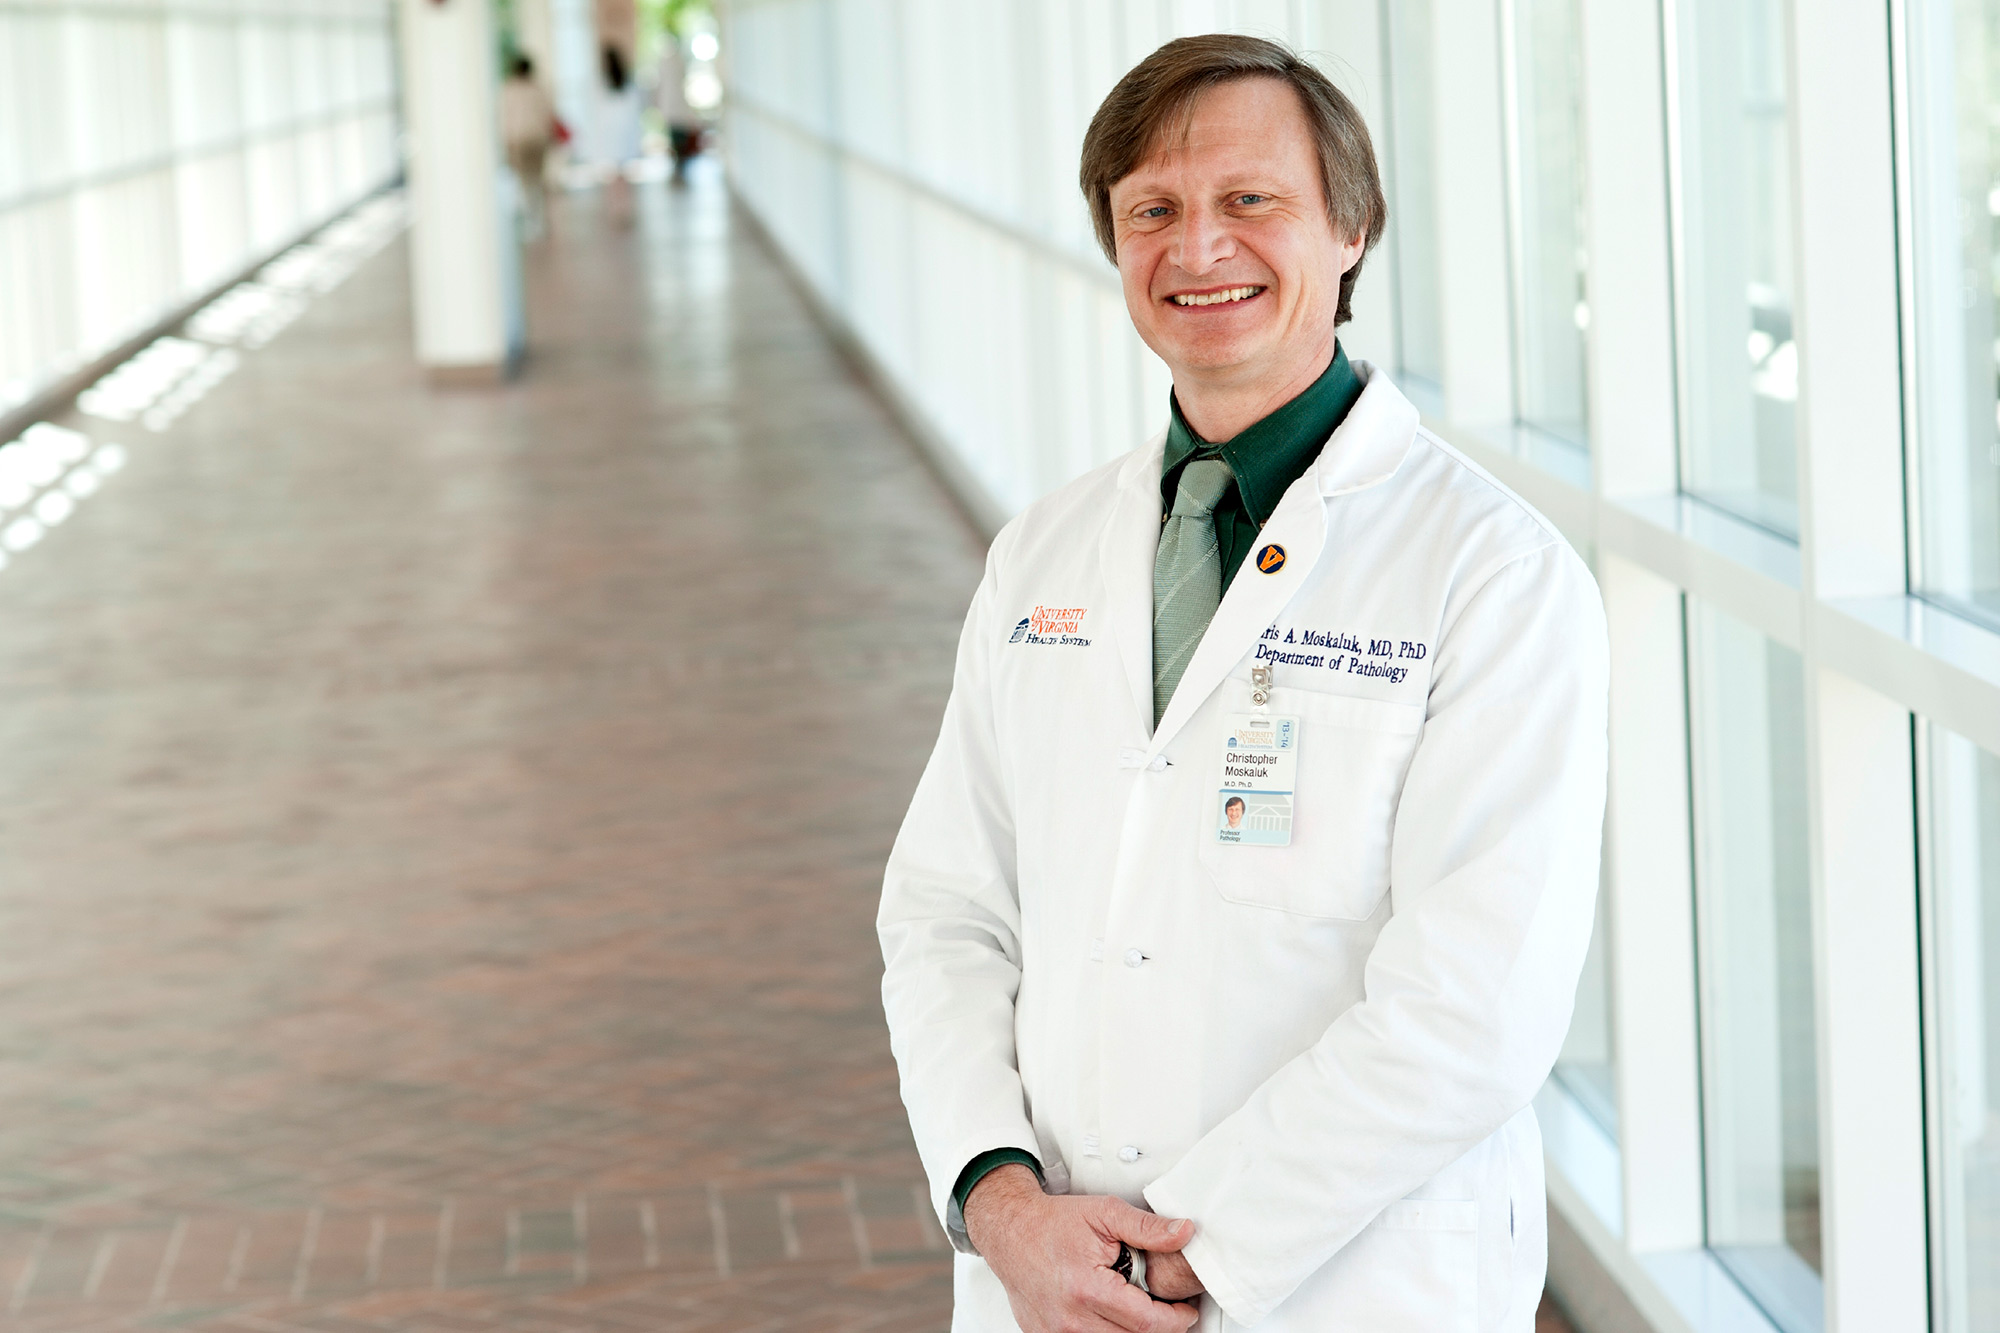 Dr. Christopher Moskaluk is directing the Lung Cancer Biospecimen Resource Program, which provides pathology samples from cancer patients to cancer researchers.